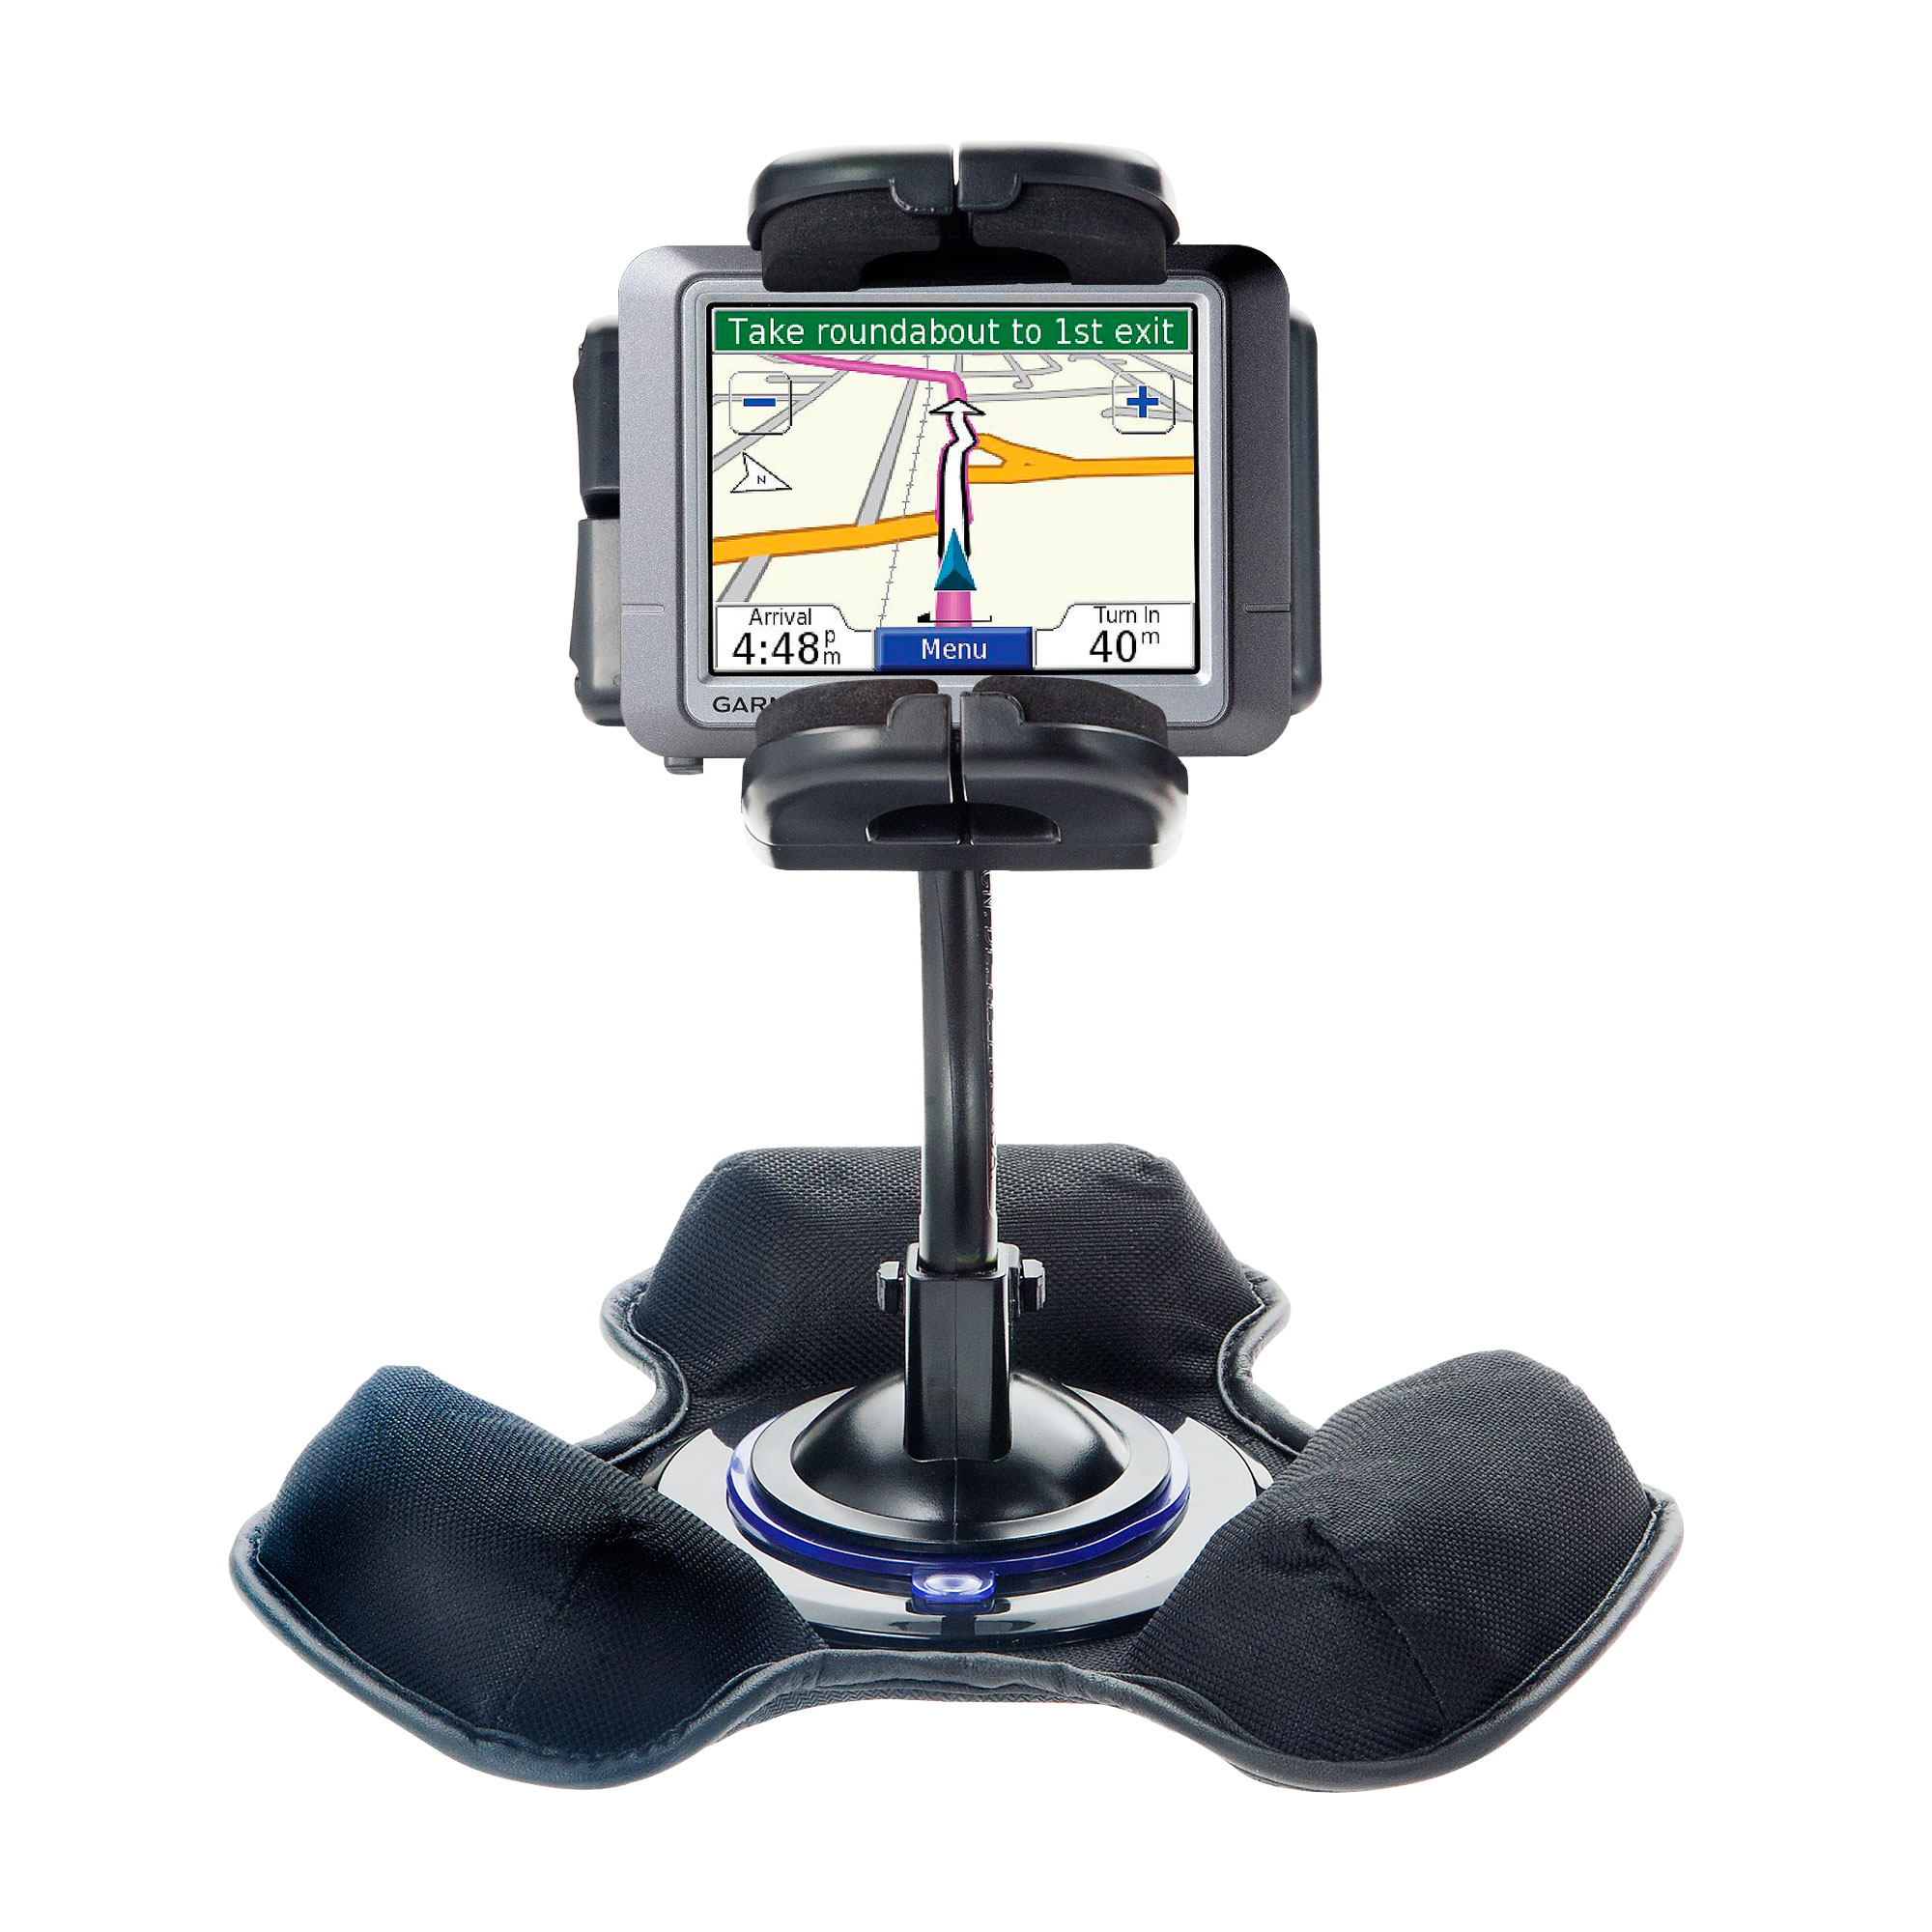 Dash and Windshield Holder compatible with the Garmin nuvi 255T